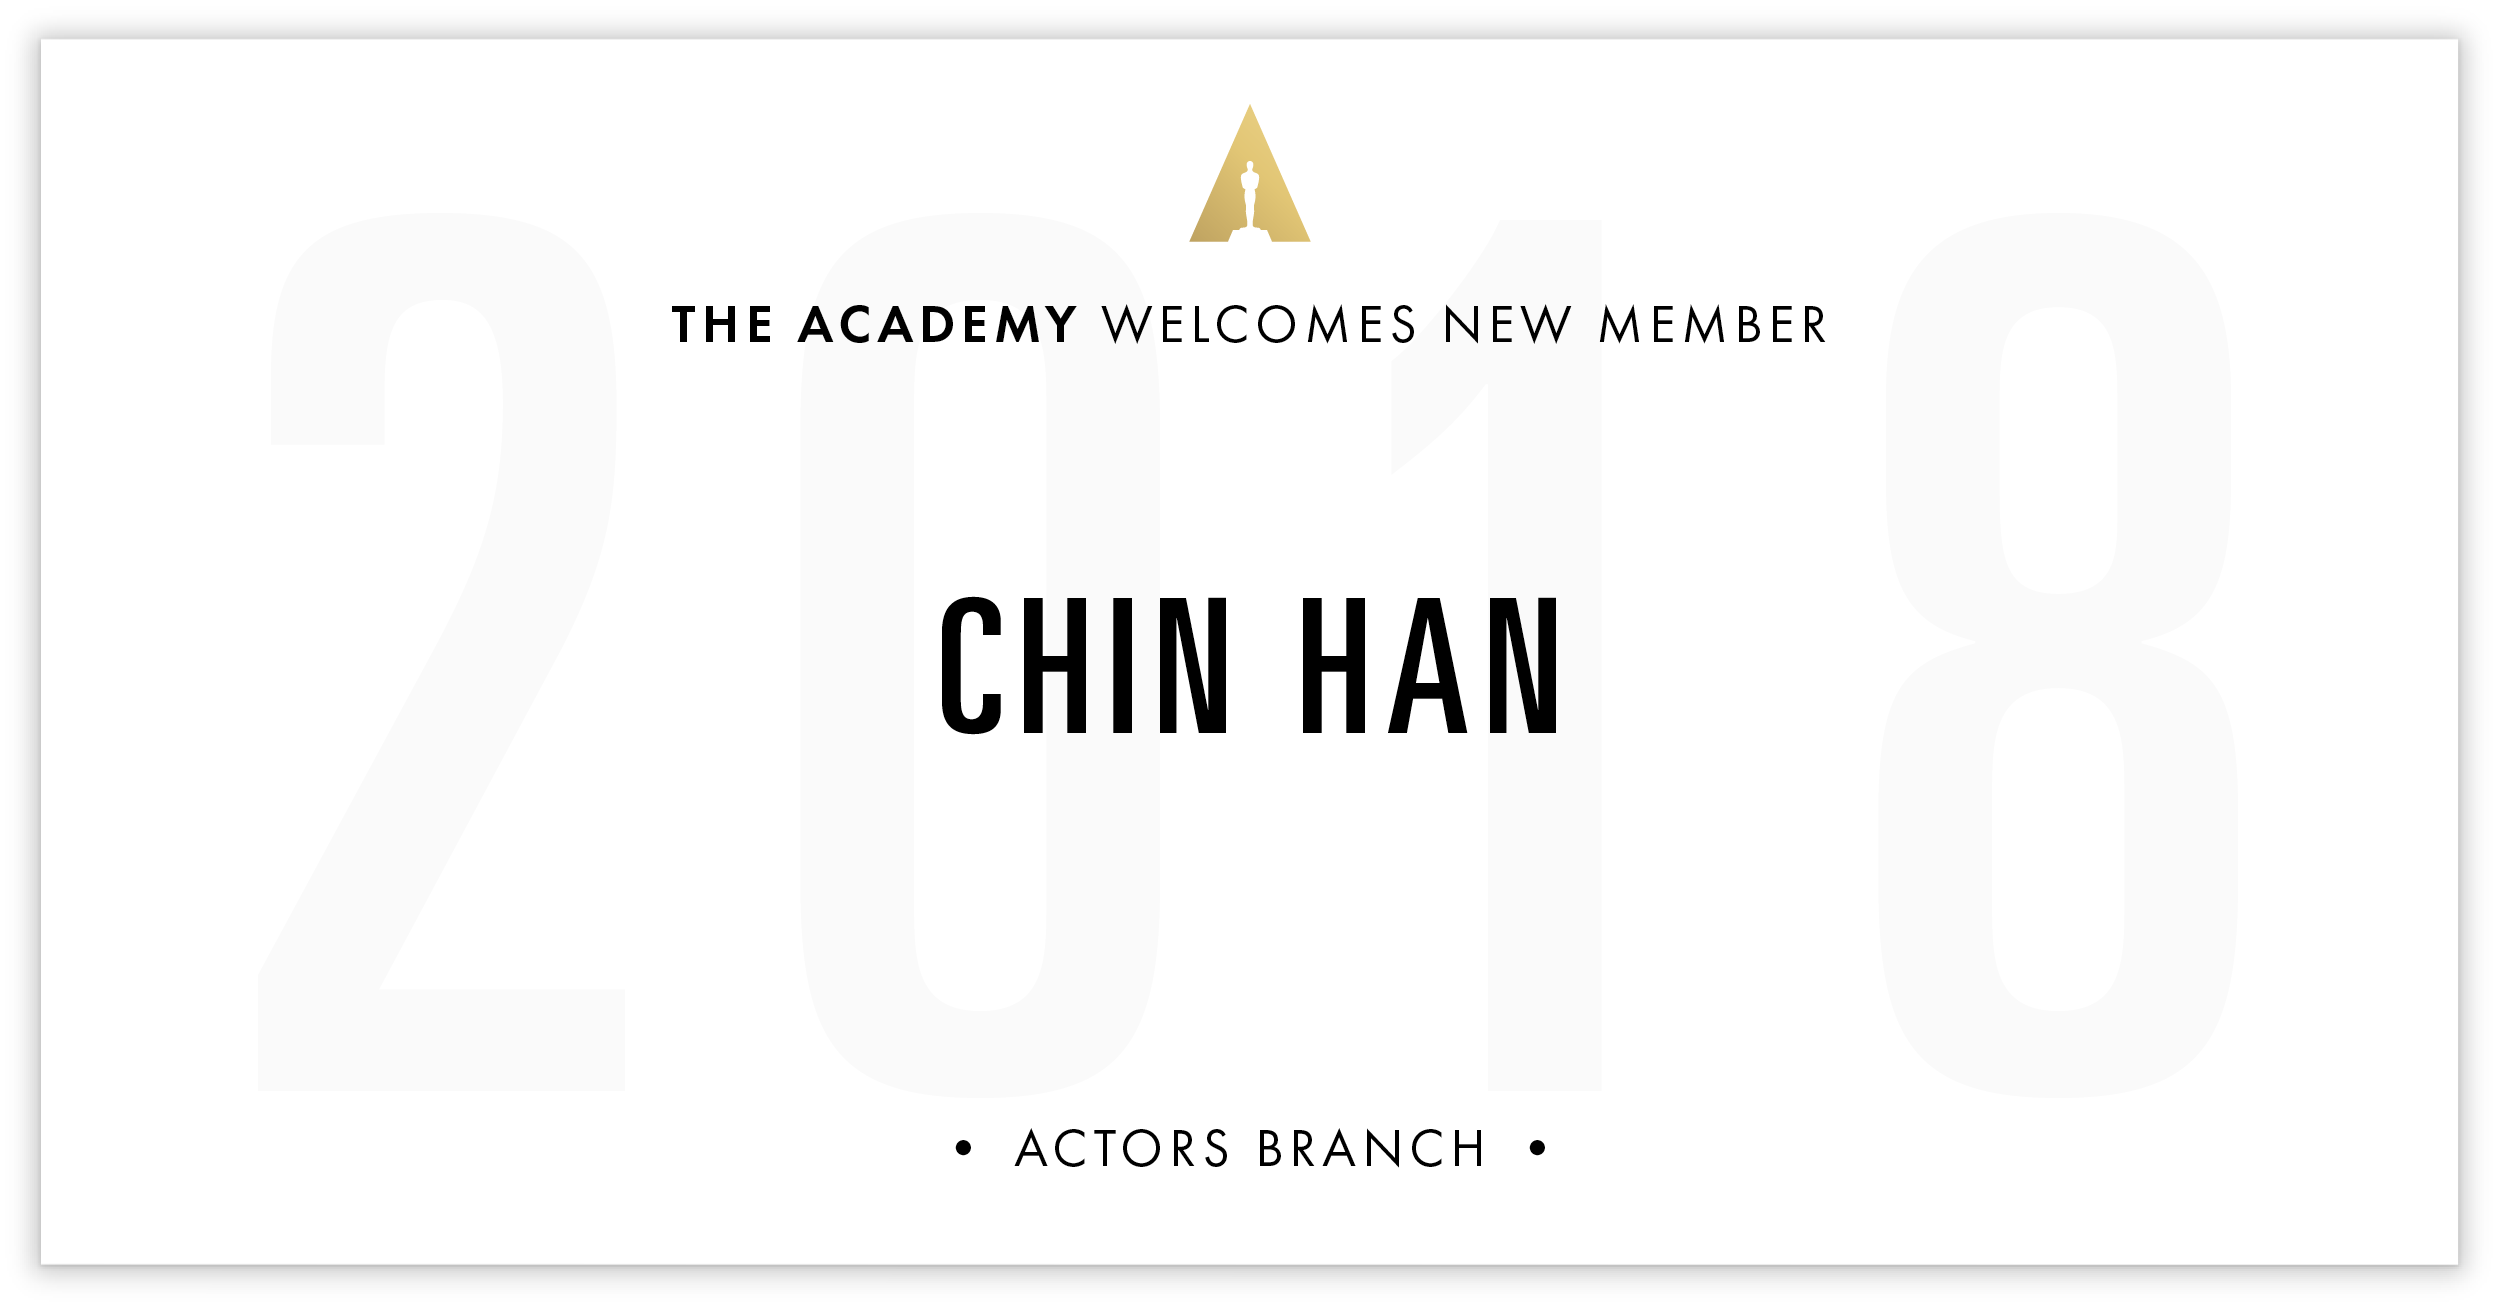 Chin Han is invited!